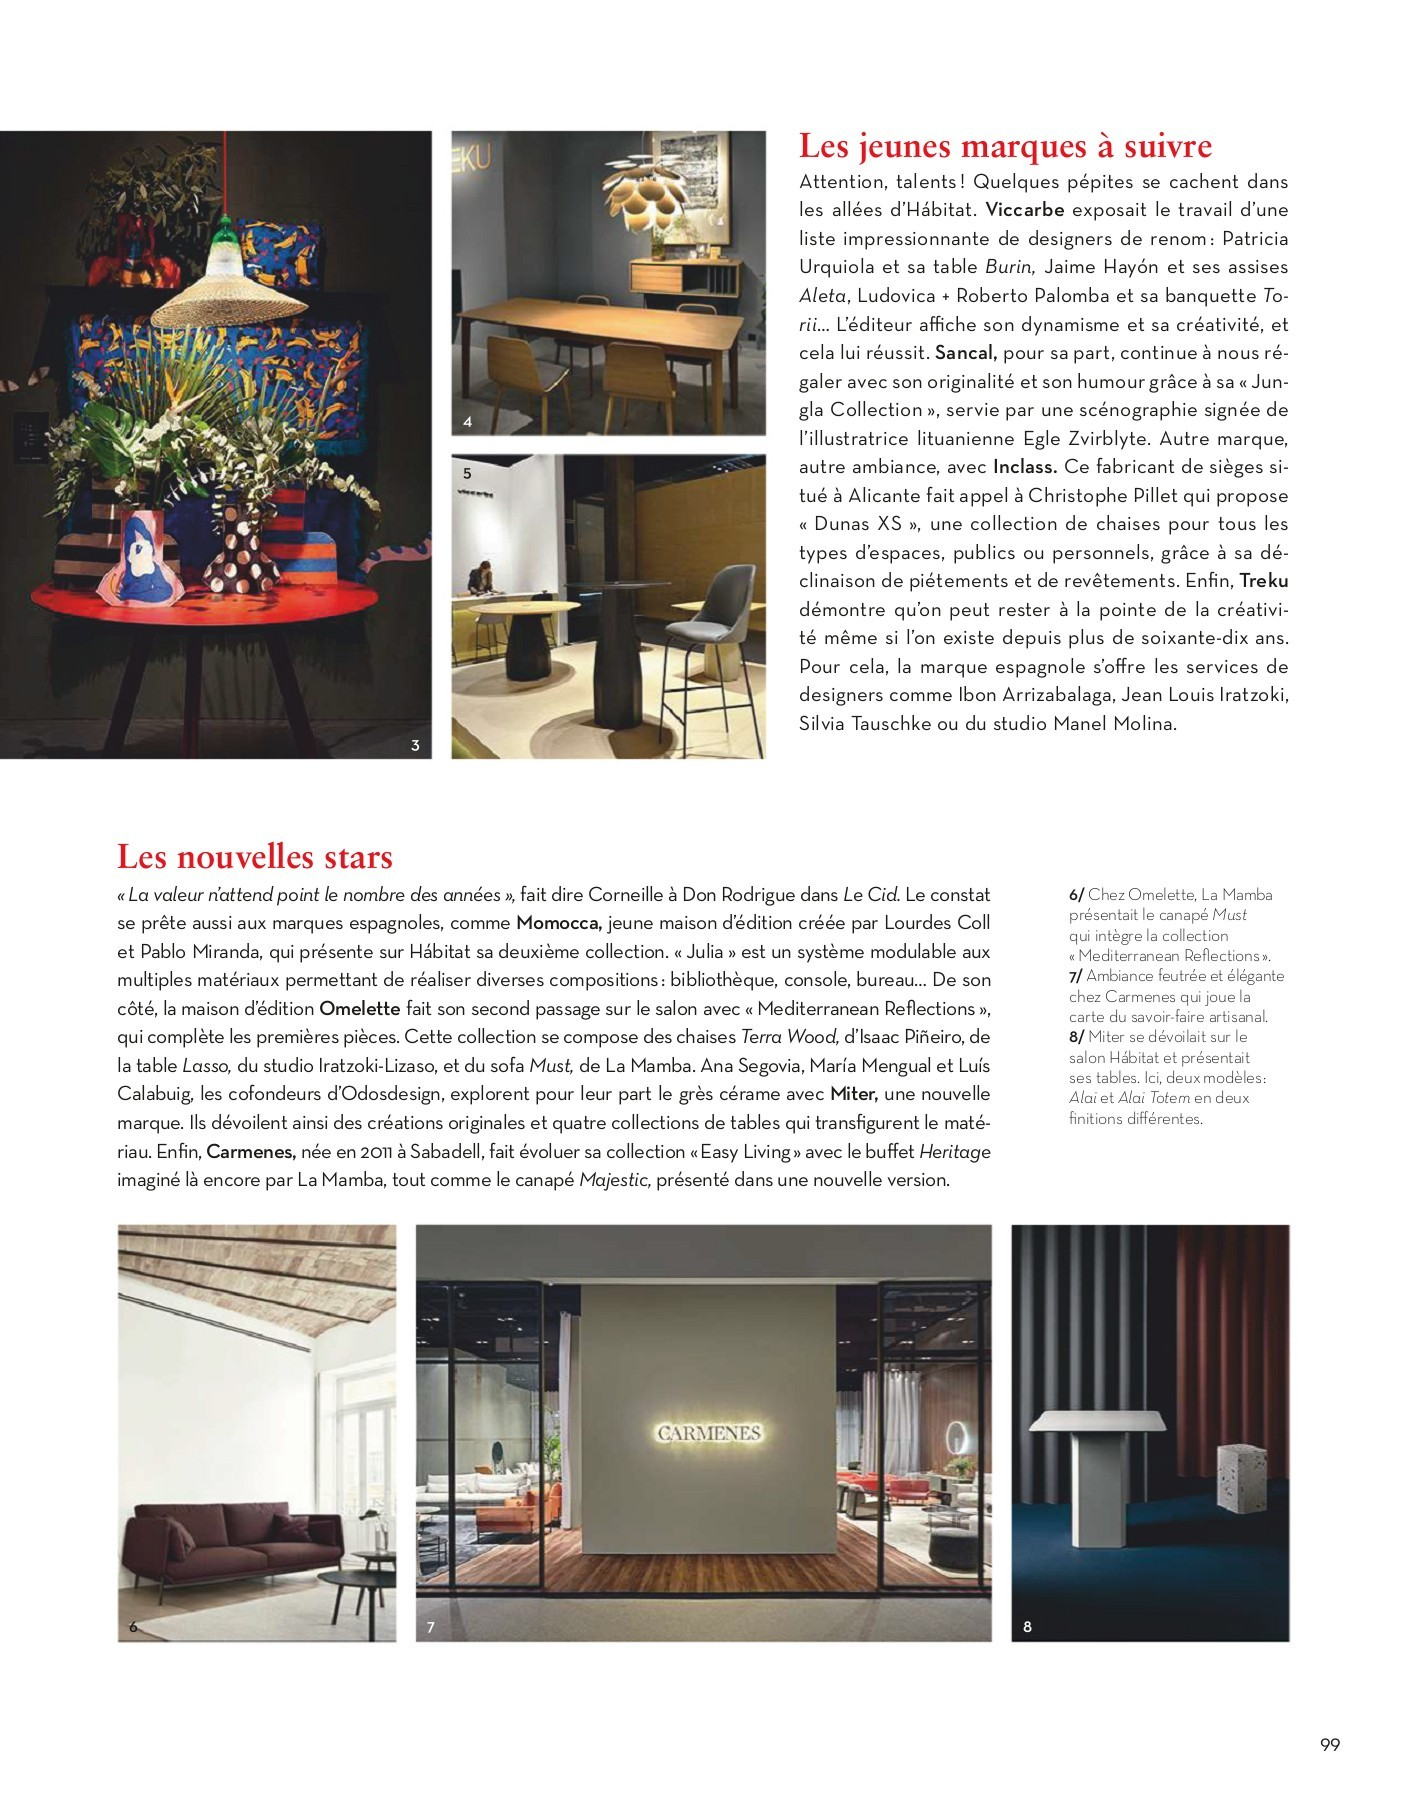 Ambiance Et Patines Valence ideat france_feb 2019-1-flip book pages 101-129   pubhtml5